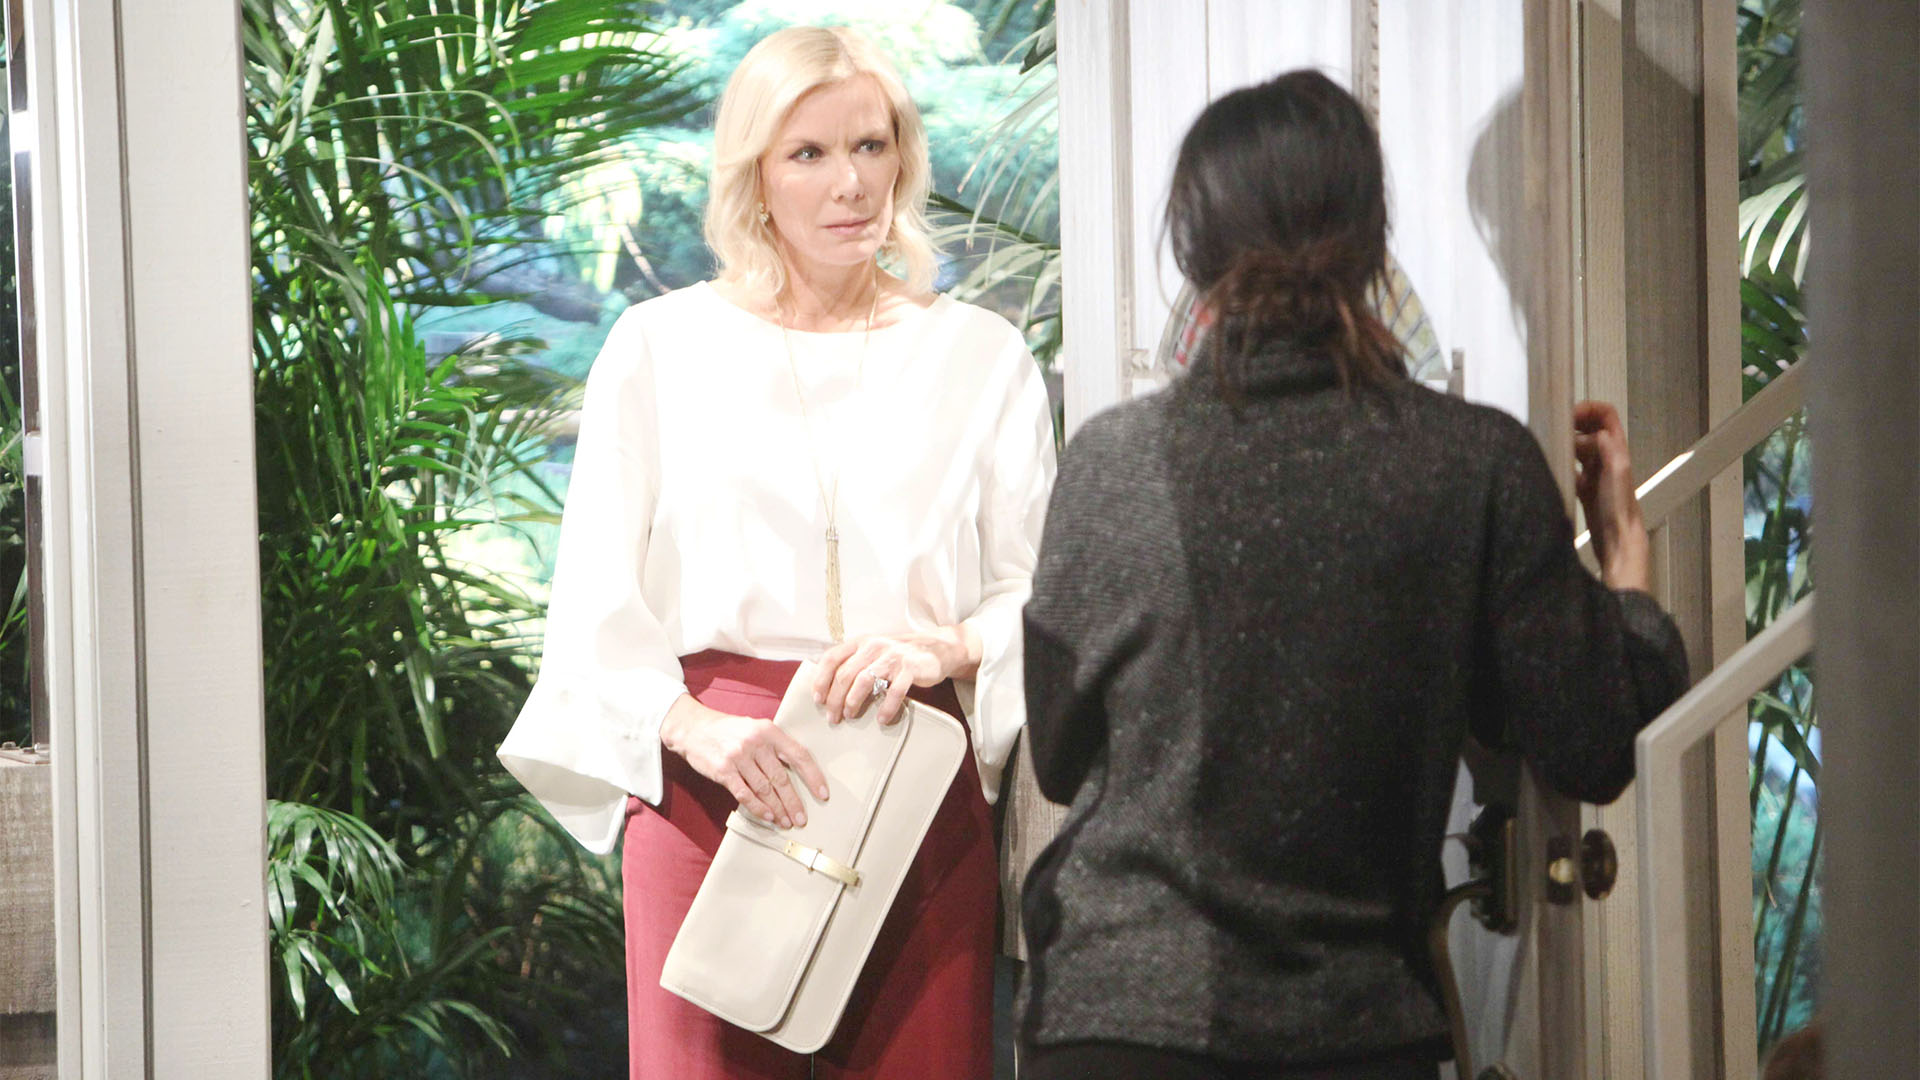 Arriving to share her and Ridge's good news, Brooke is shocked to find Steffy in emotional dismay.